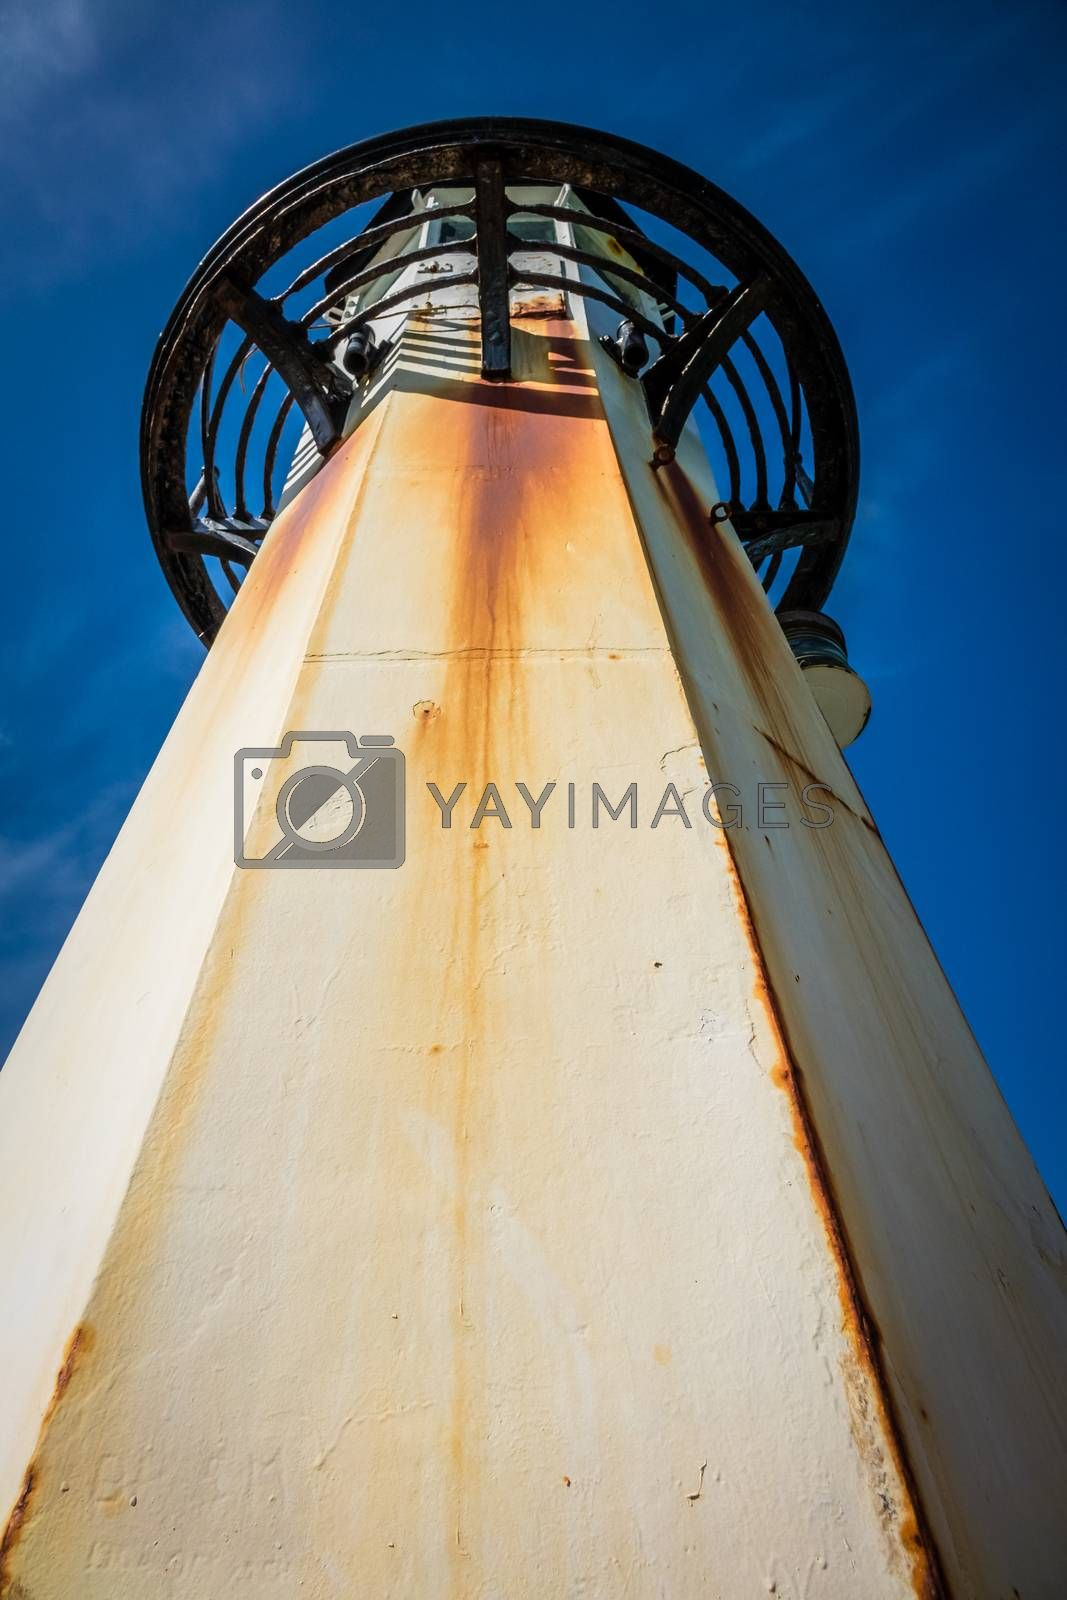 Lighthouse on the Smeatons Pierin the bay in St. Ives, Cornwall, England, UK, Europe